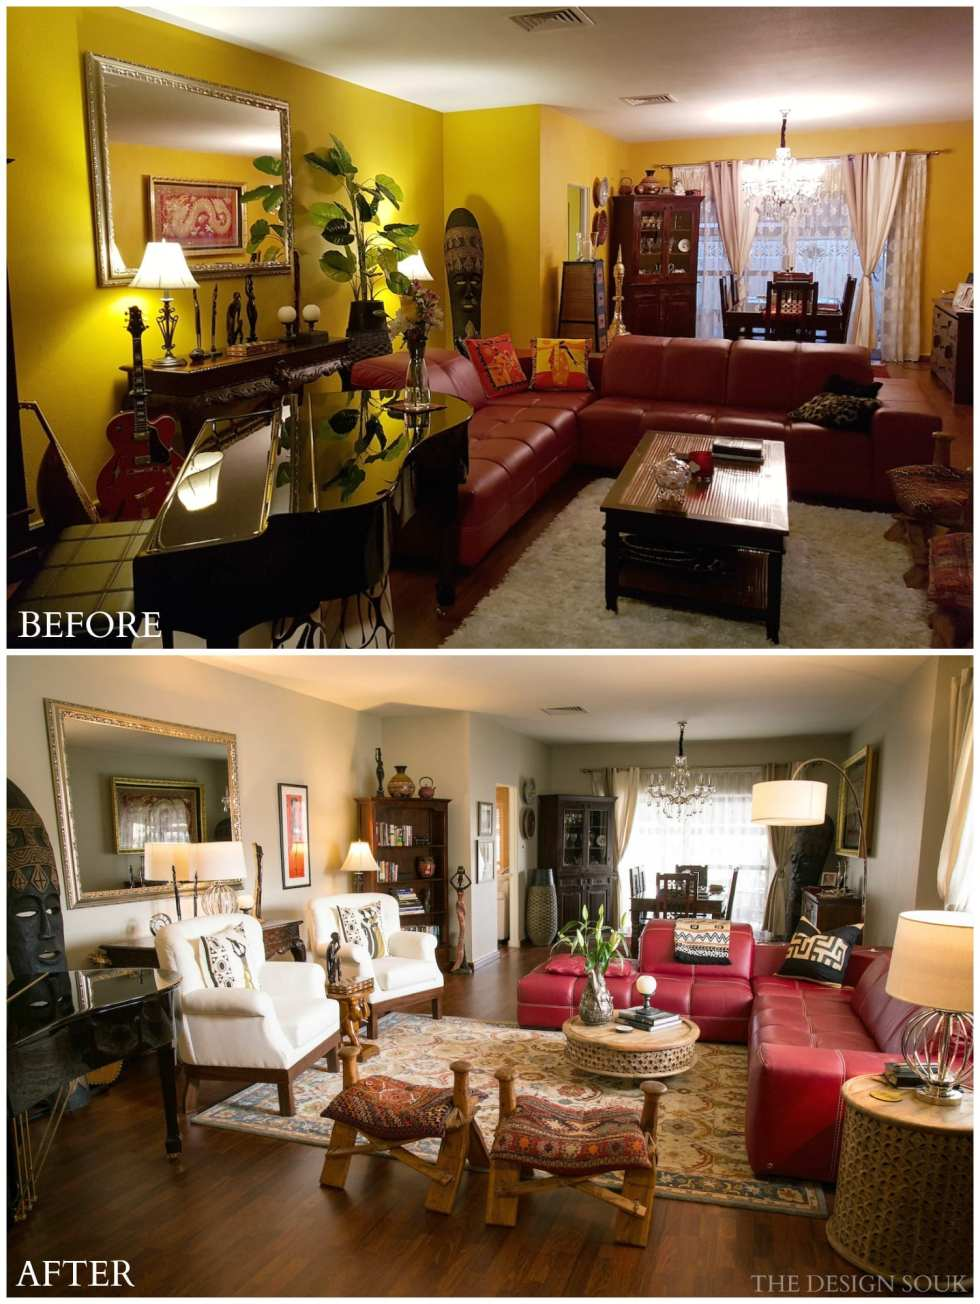 A Living Room Makeover BEFORE & AFTER | THE DESIGN SOUK | www.thedesignsouk.com